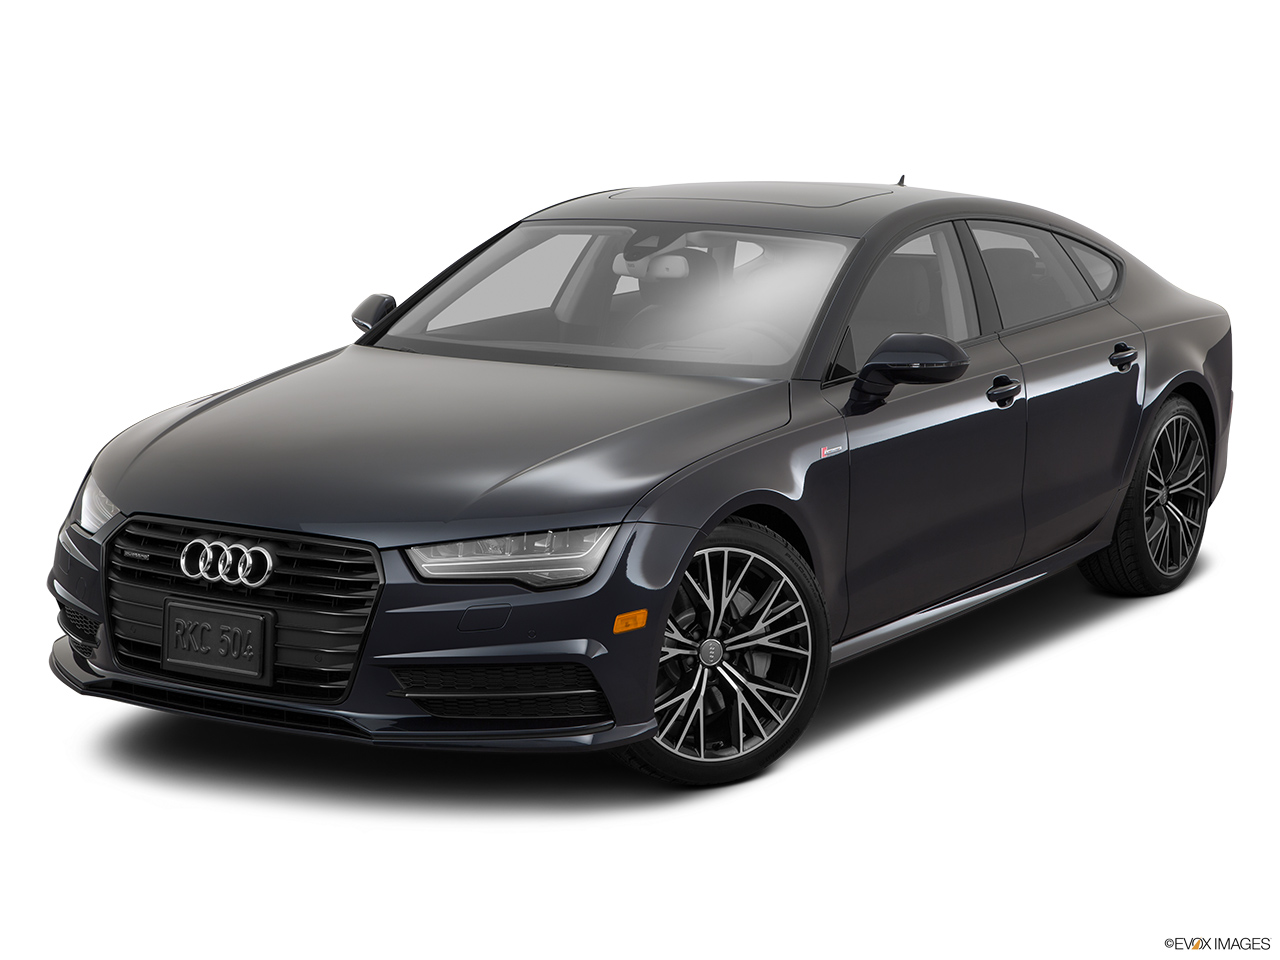 audi a7 2016 3 0l 333 hp in qatar new car prices specs reviews photos yallamotor. Black Bedroom Furniture Sets. Home Design Ideas